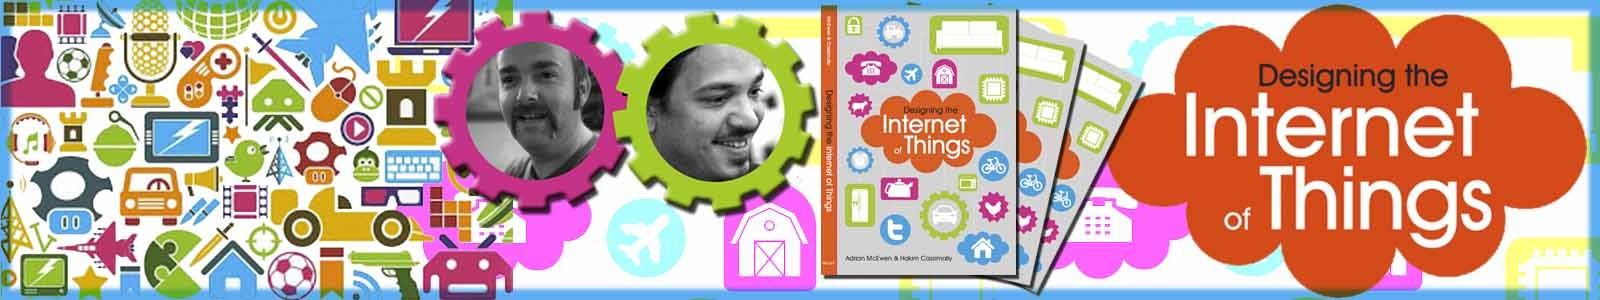 Perl and the Internet of Things Banner